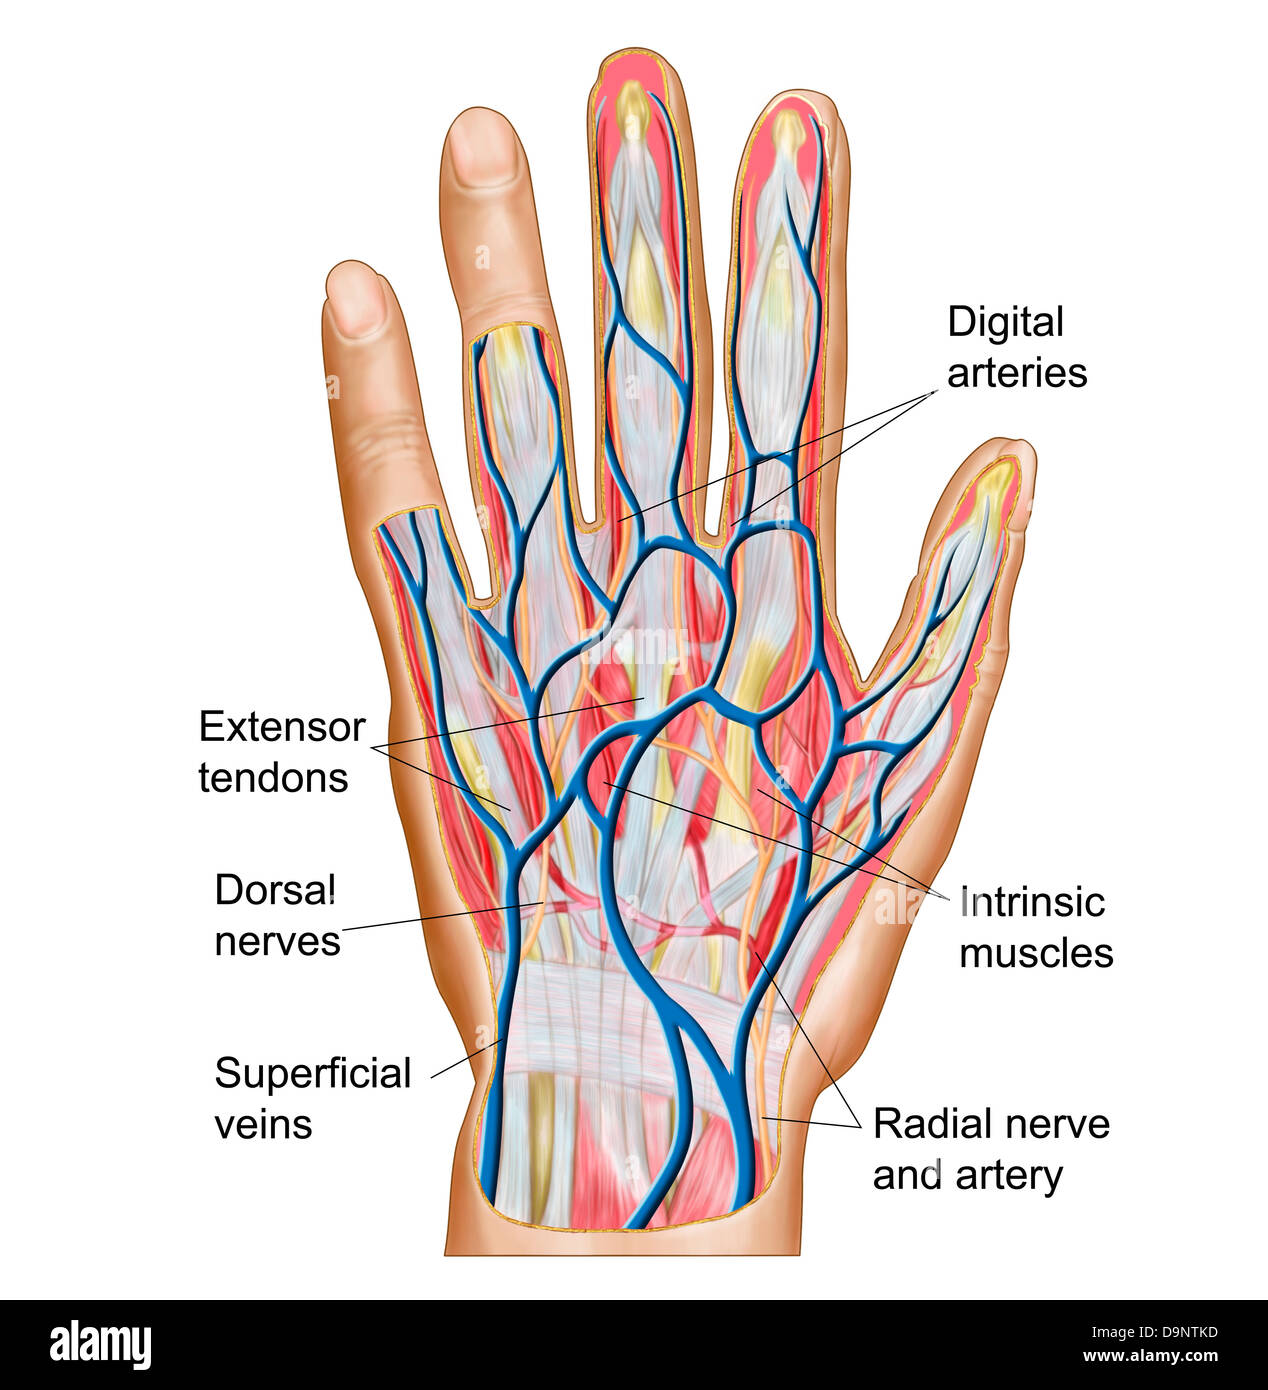 Anatomy Of Back Of Human Hand Stock Photo 57643361 Alamy